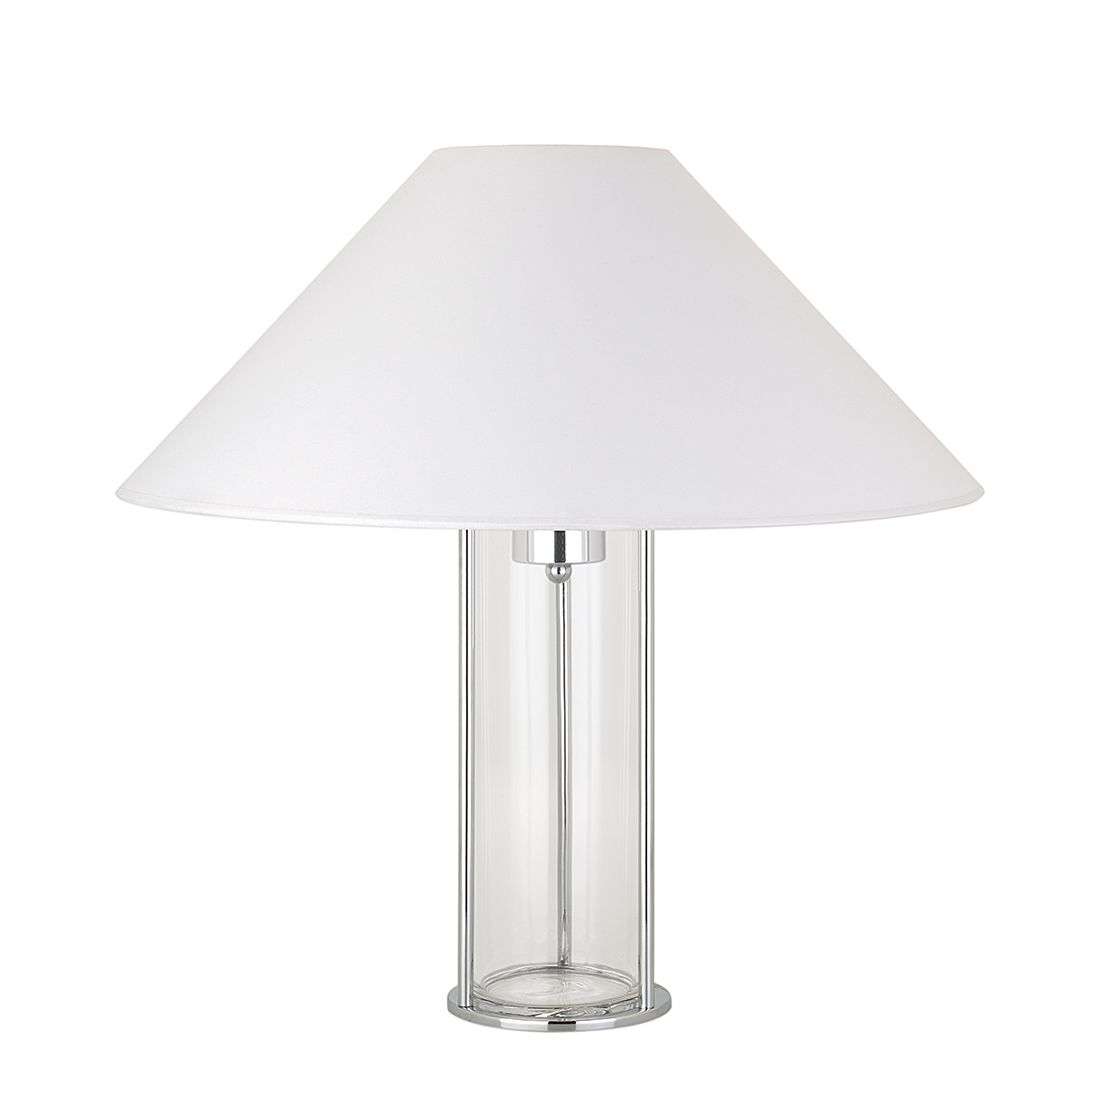 Tabourets Kitson Eek A 43 43 Lampe De Table Sphérique Boston Argenté Blanc